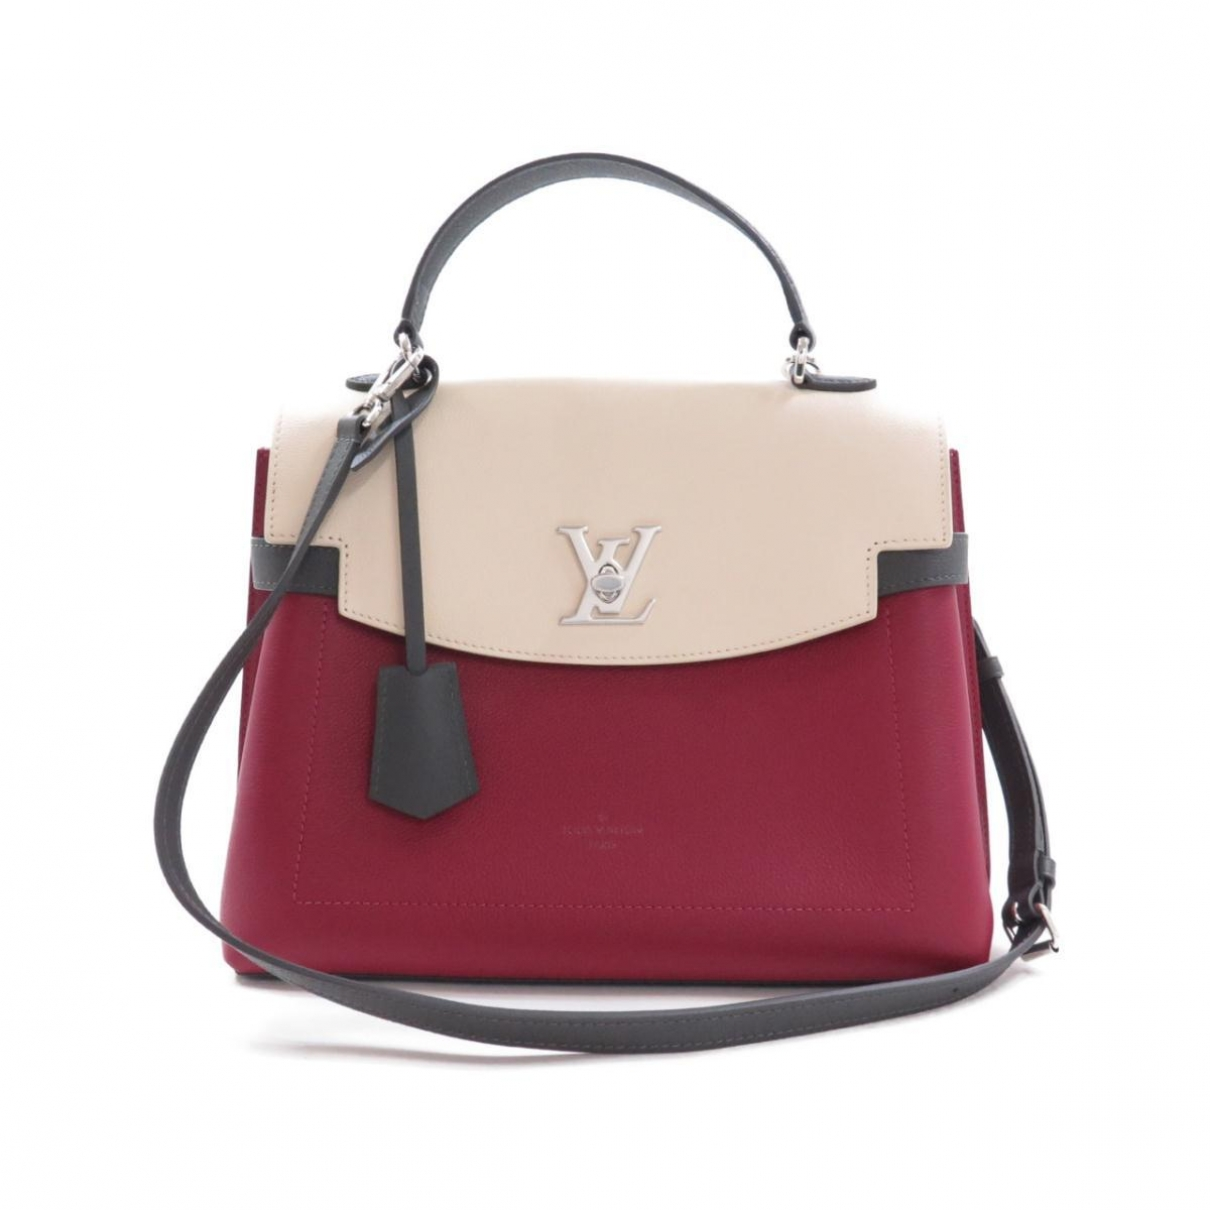 Louis Vuitton Lockme Handtasche in  Rot Leder